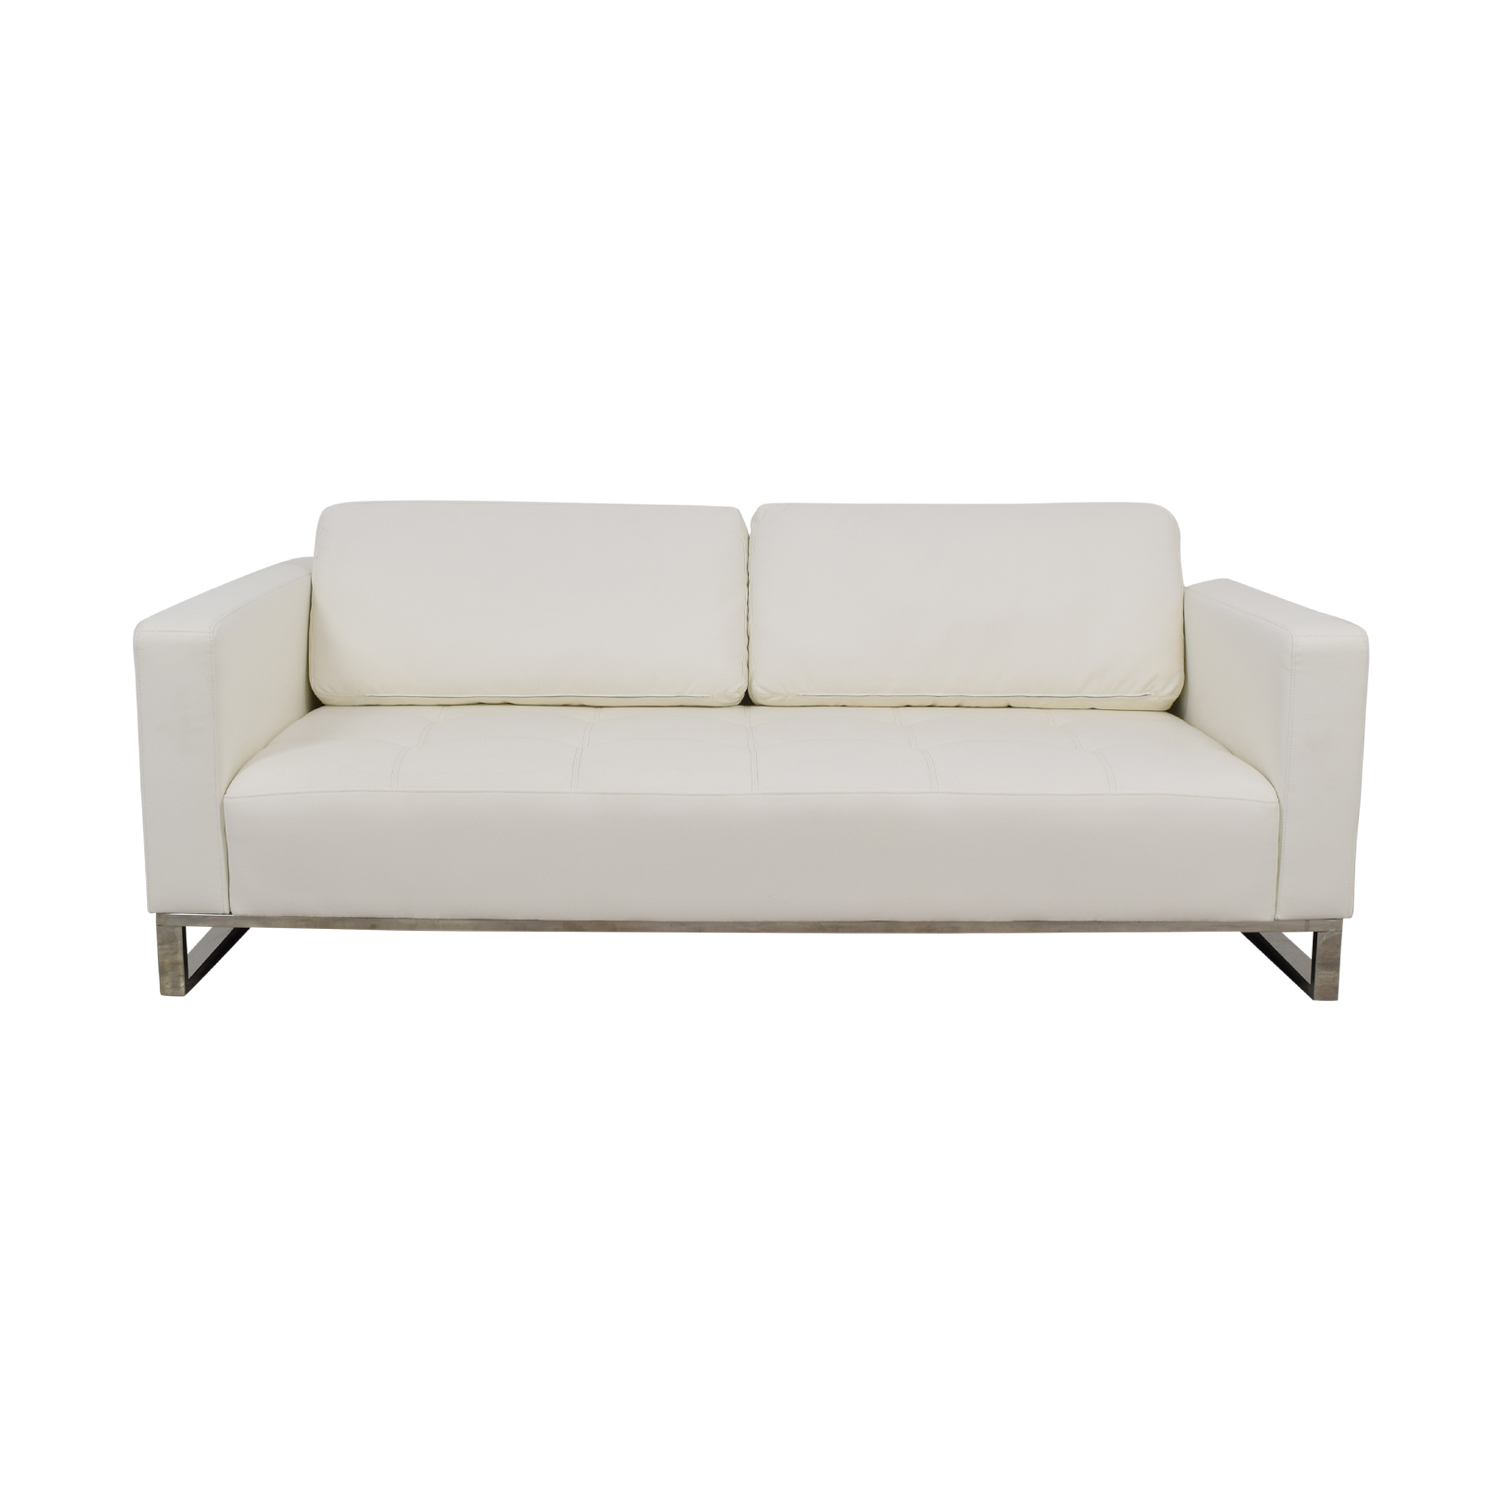 Modani Modani Convertible Eco Leather White Nelson Sofa Sofas